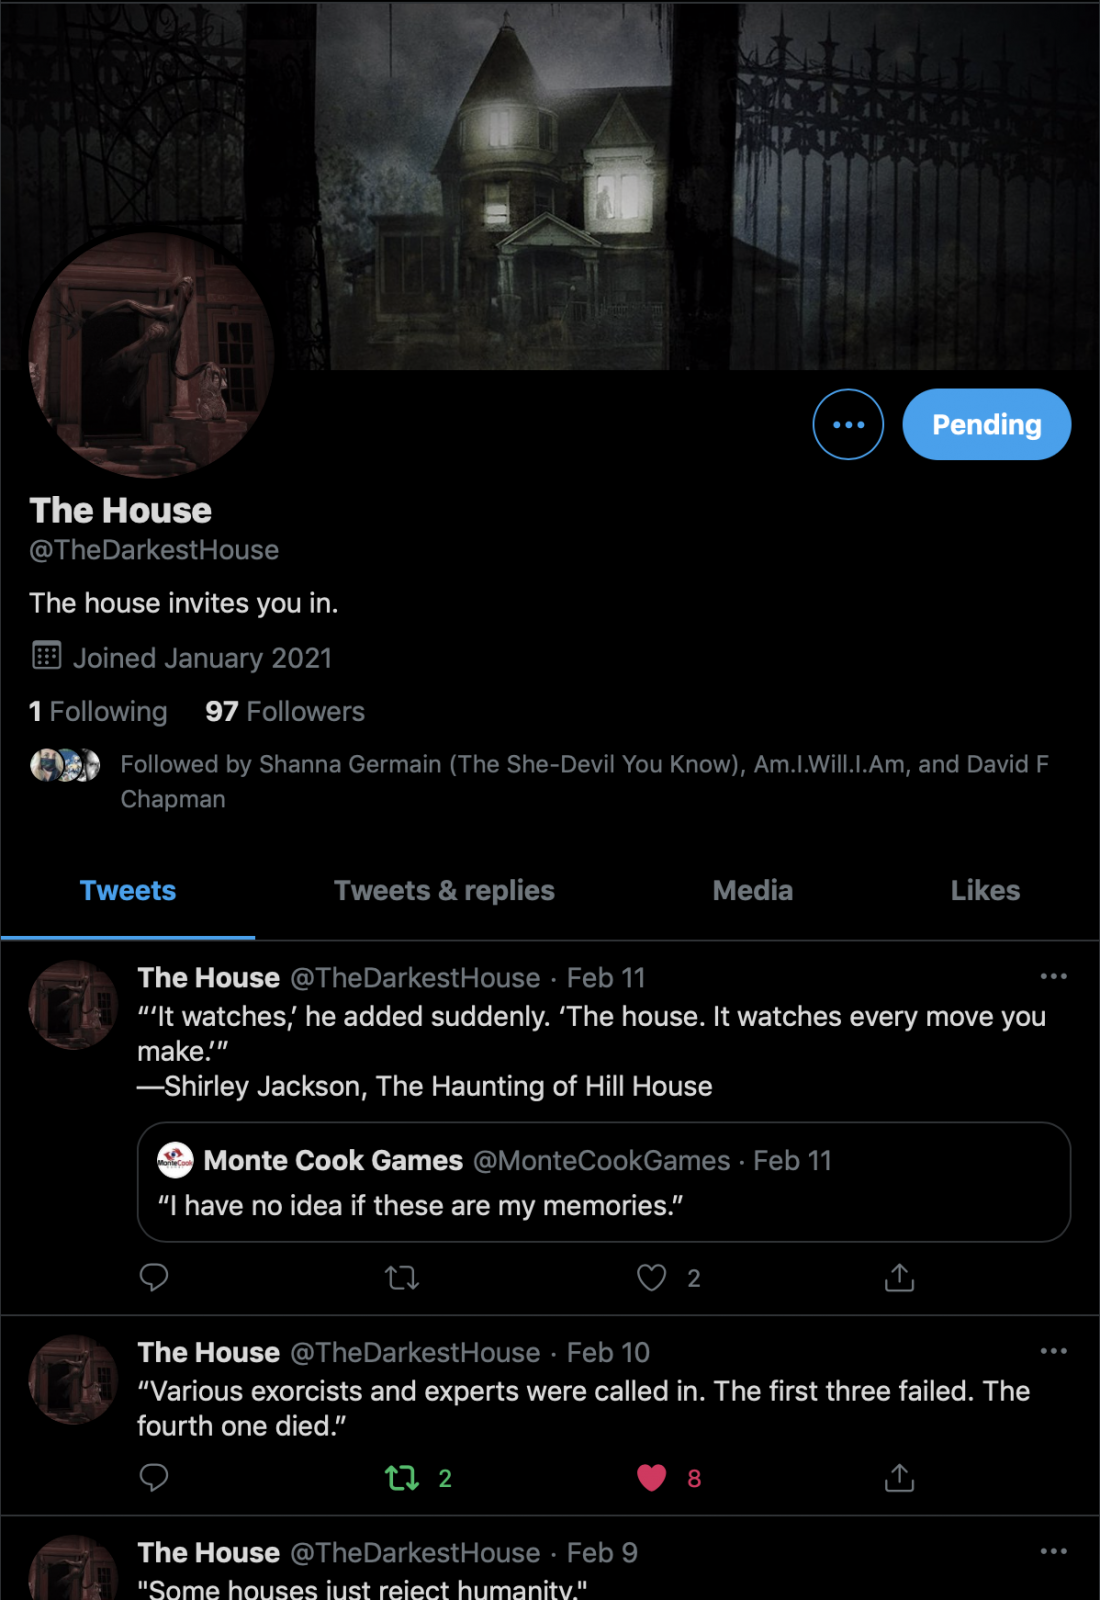 A screenshot of The Darkest House Twitter page.